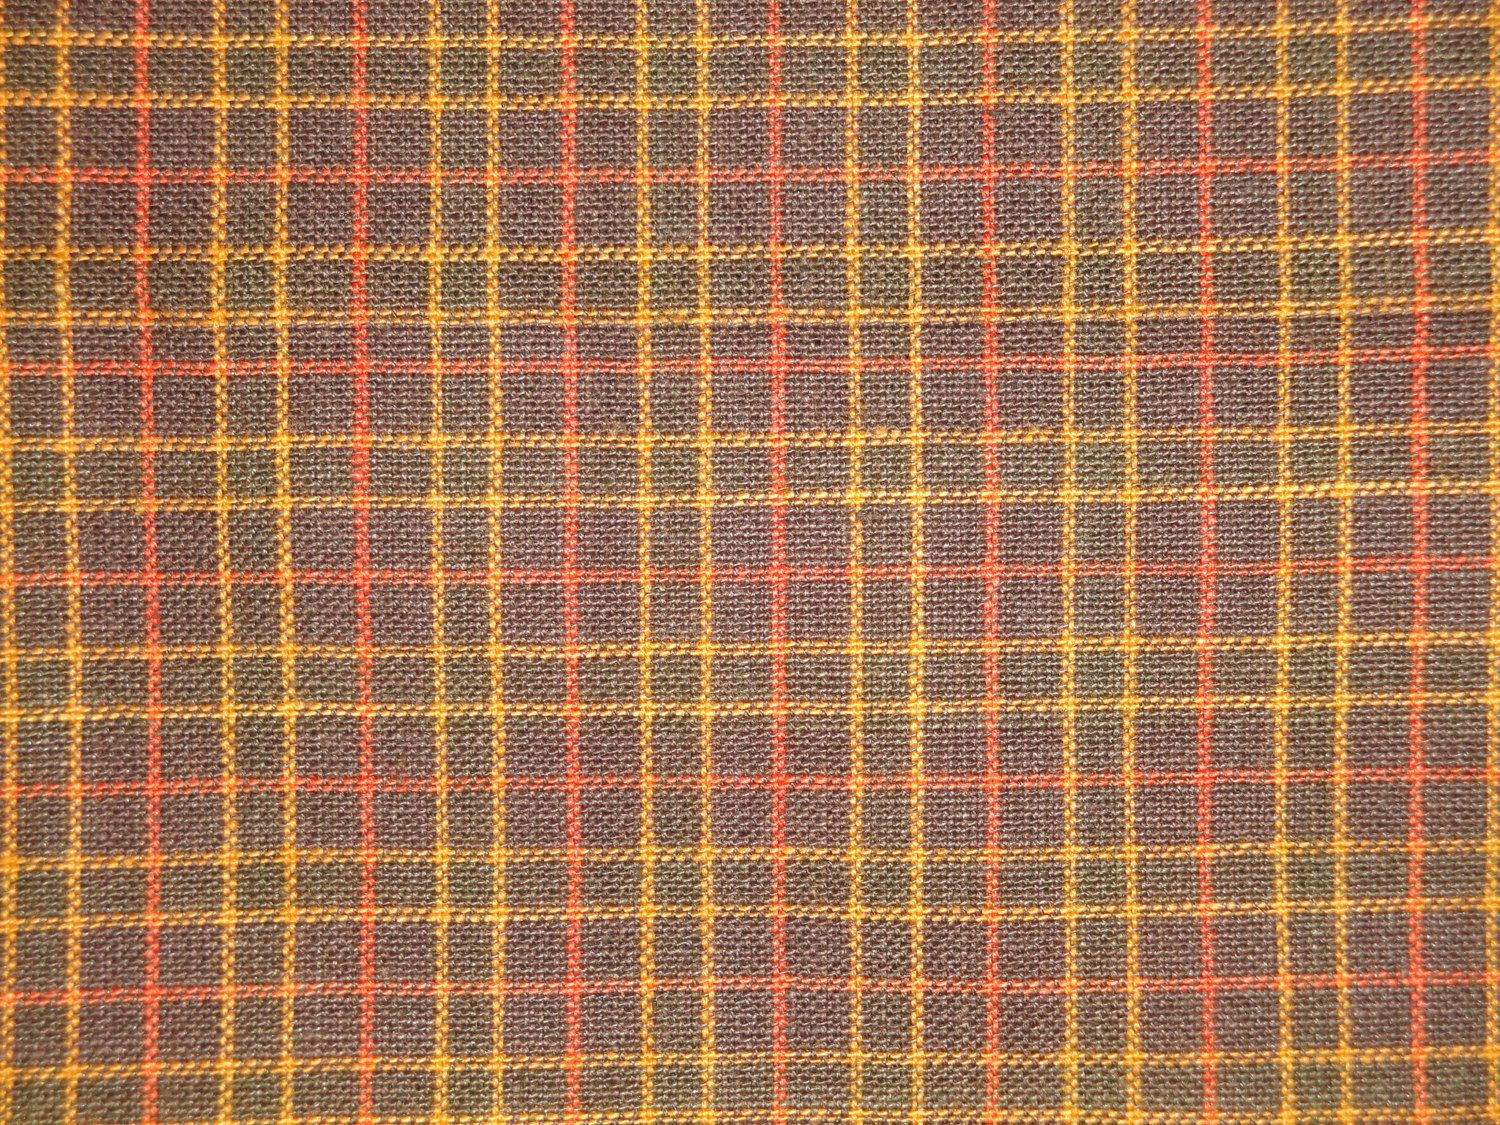 Window Pane Plaid material. 100% Cotton. Hand wash separately. No chlorine bleach. Line dry. Bolt end reads brown and rust window pane plaid.  Listing is for 1 yard 36 inches long x 44 inches wide.  If ordering more that 1 it will come in one continuous piece.  Last photo shows